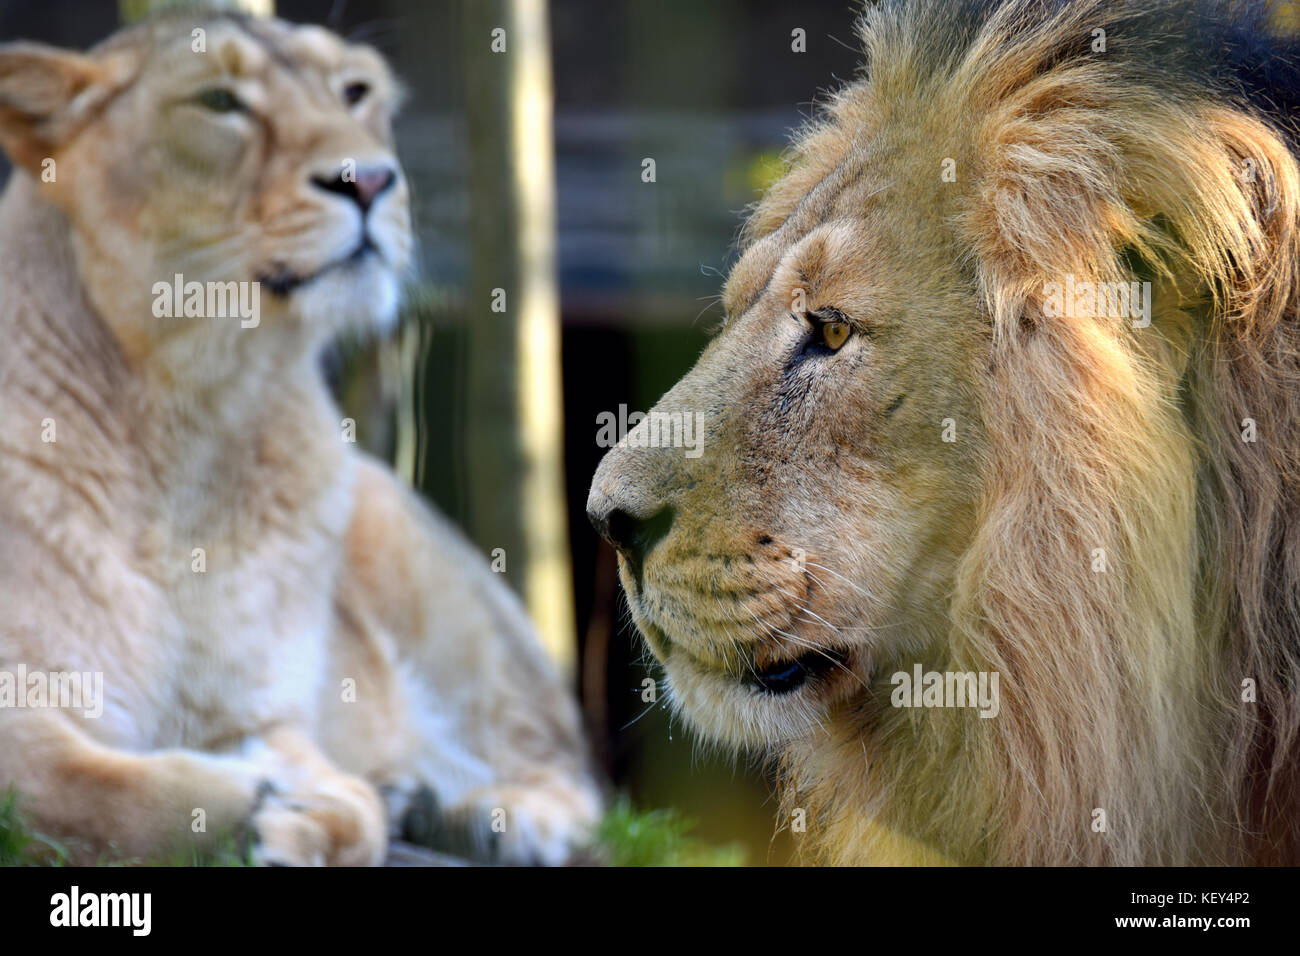 Asiatic lions (Panthera leo persica) couple, also known as the Indian lion and Persian lion. Male on foreground, - Stock Image